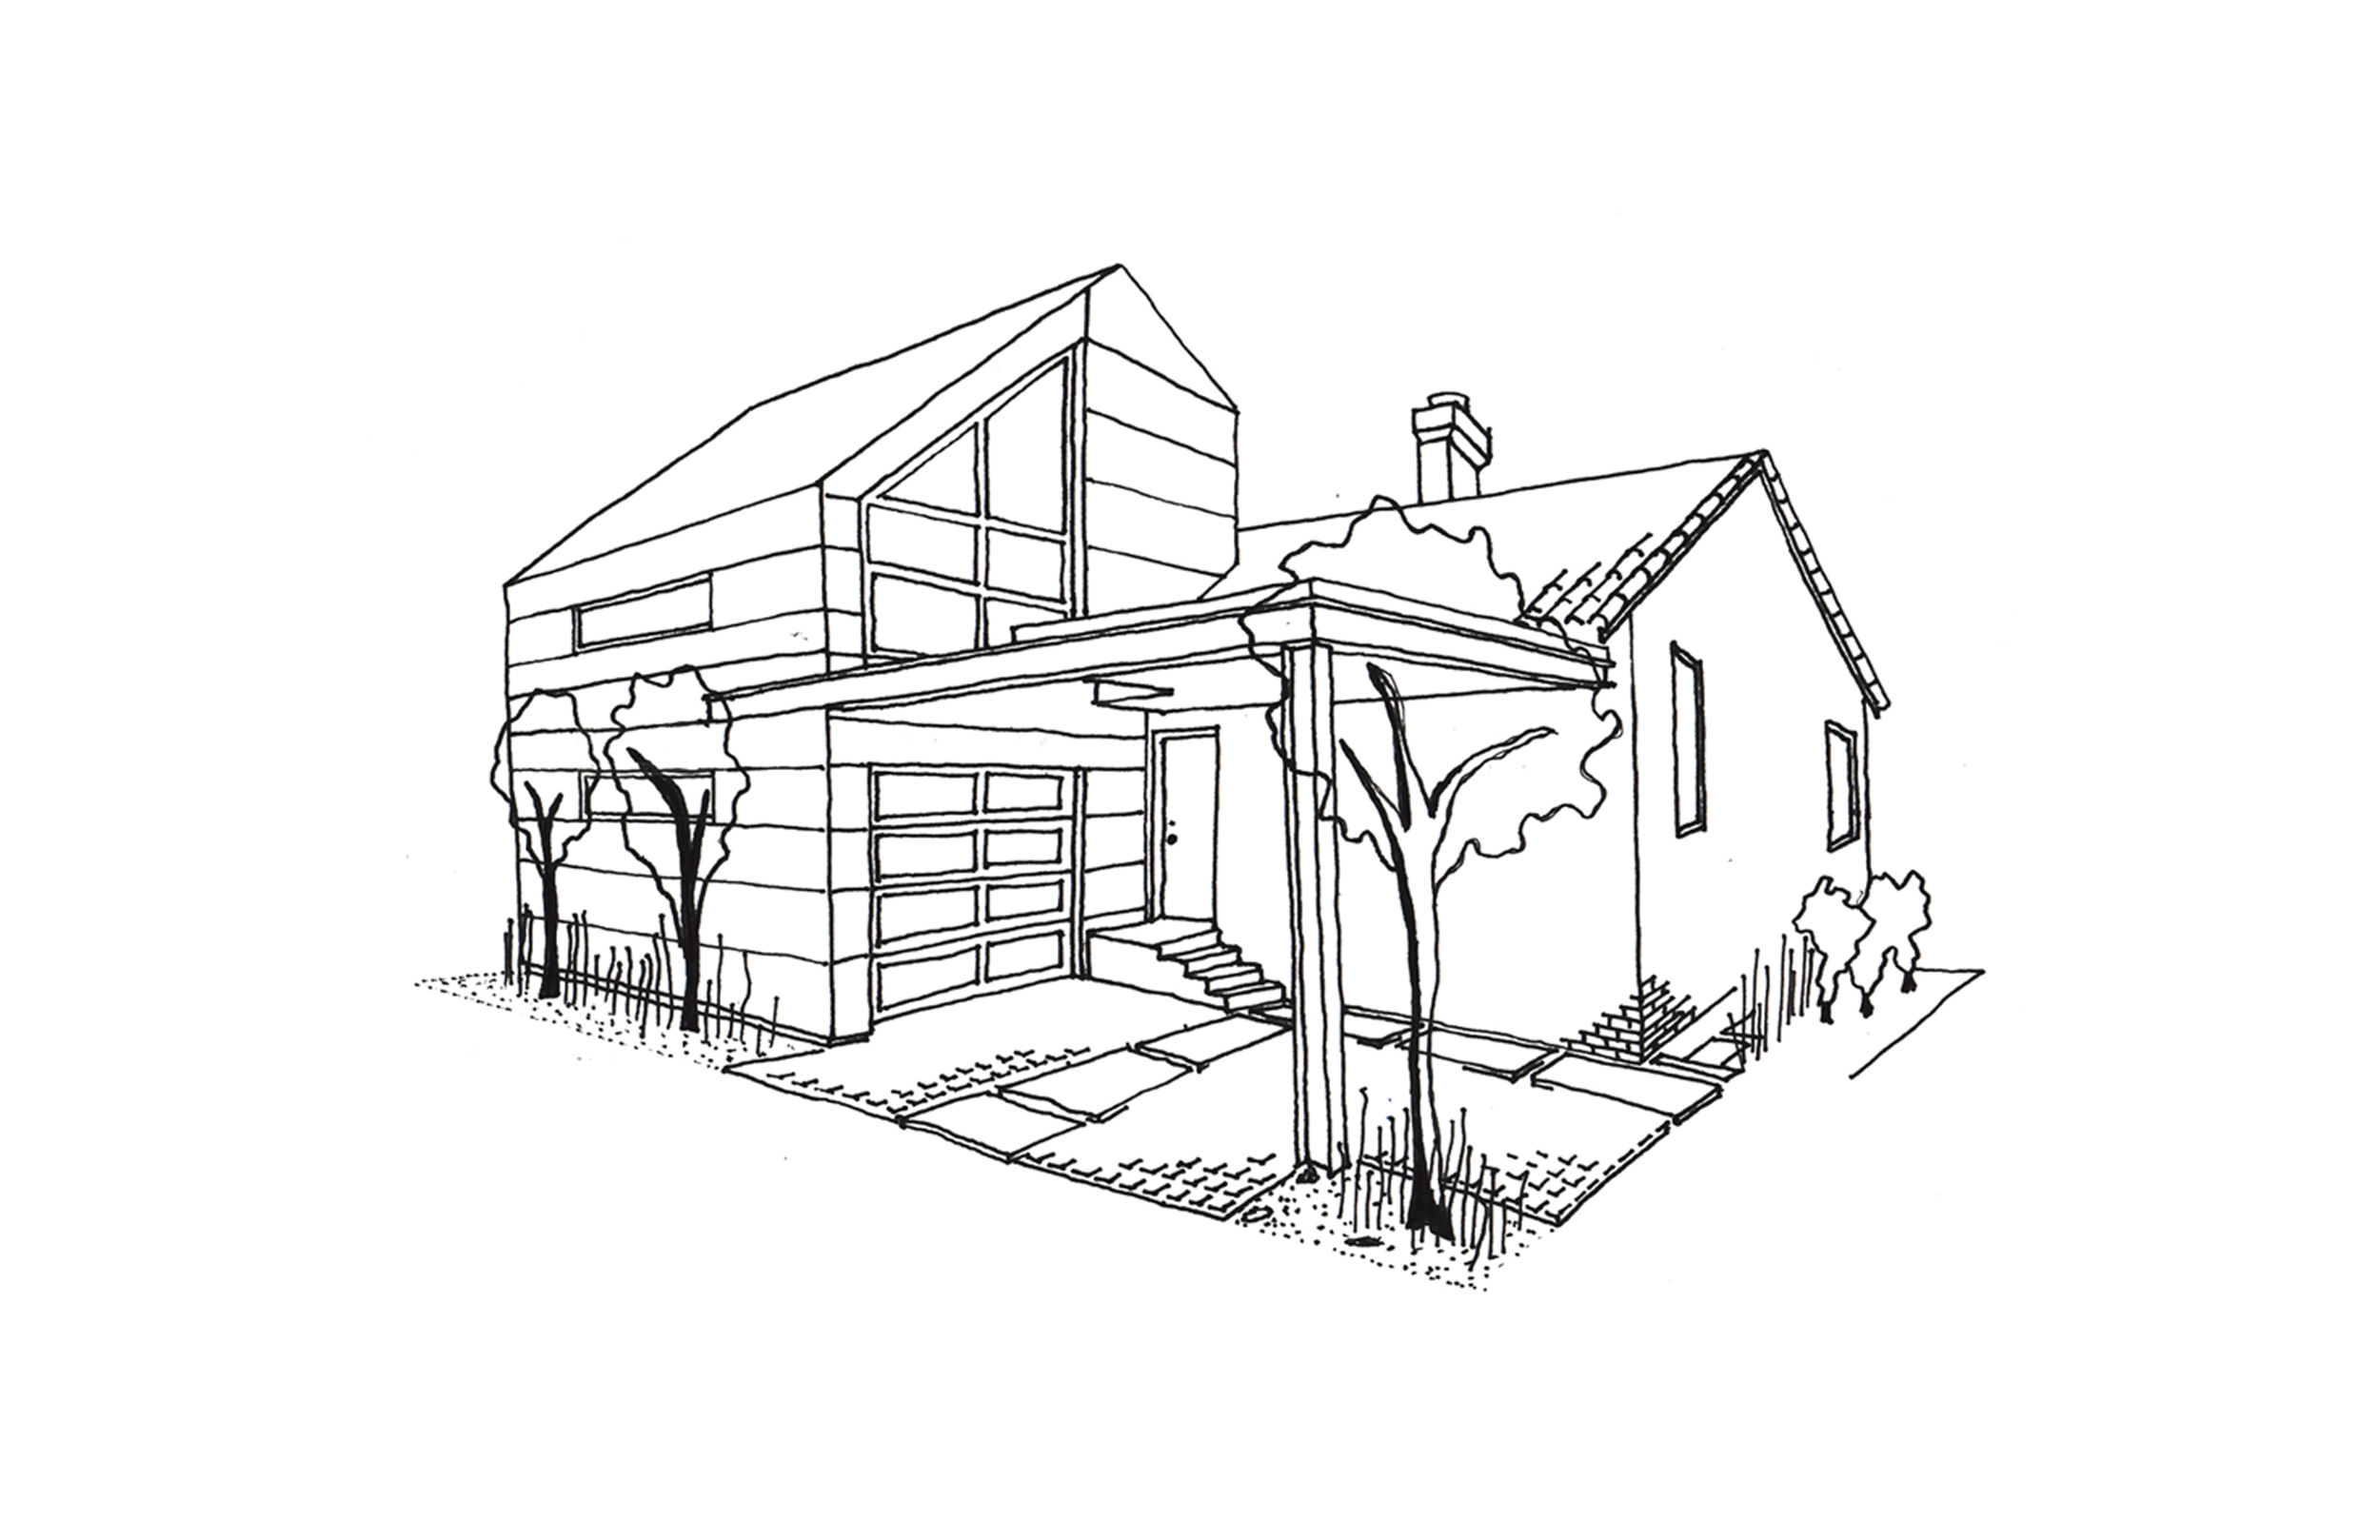 WC-STUDIO-LAKE-WASHINGTON-HOUSE-ADDITION-SKETCH.jpg